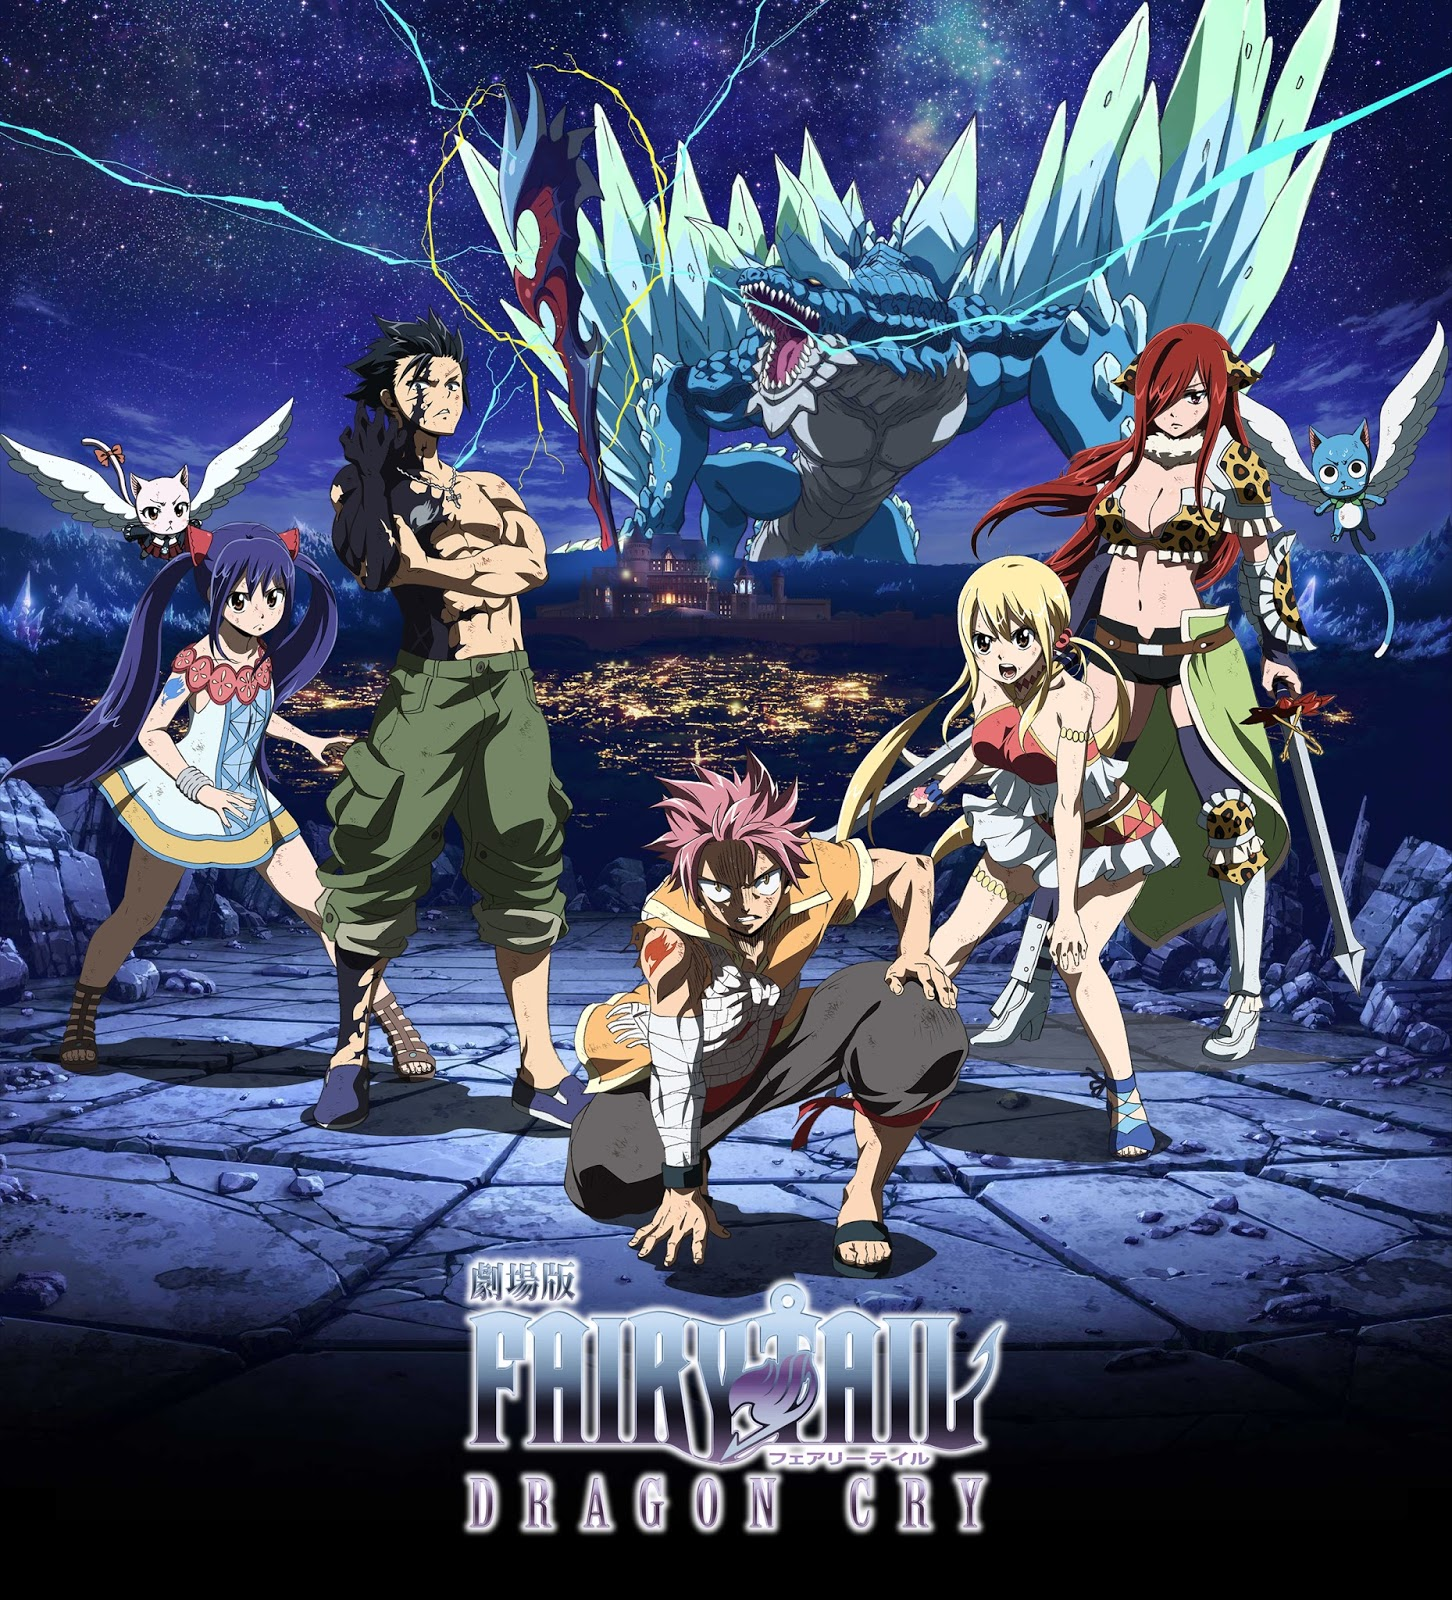 Fairy Tail Dragon Cry Full Movie Ger Sub